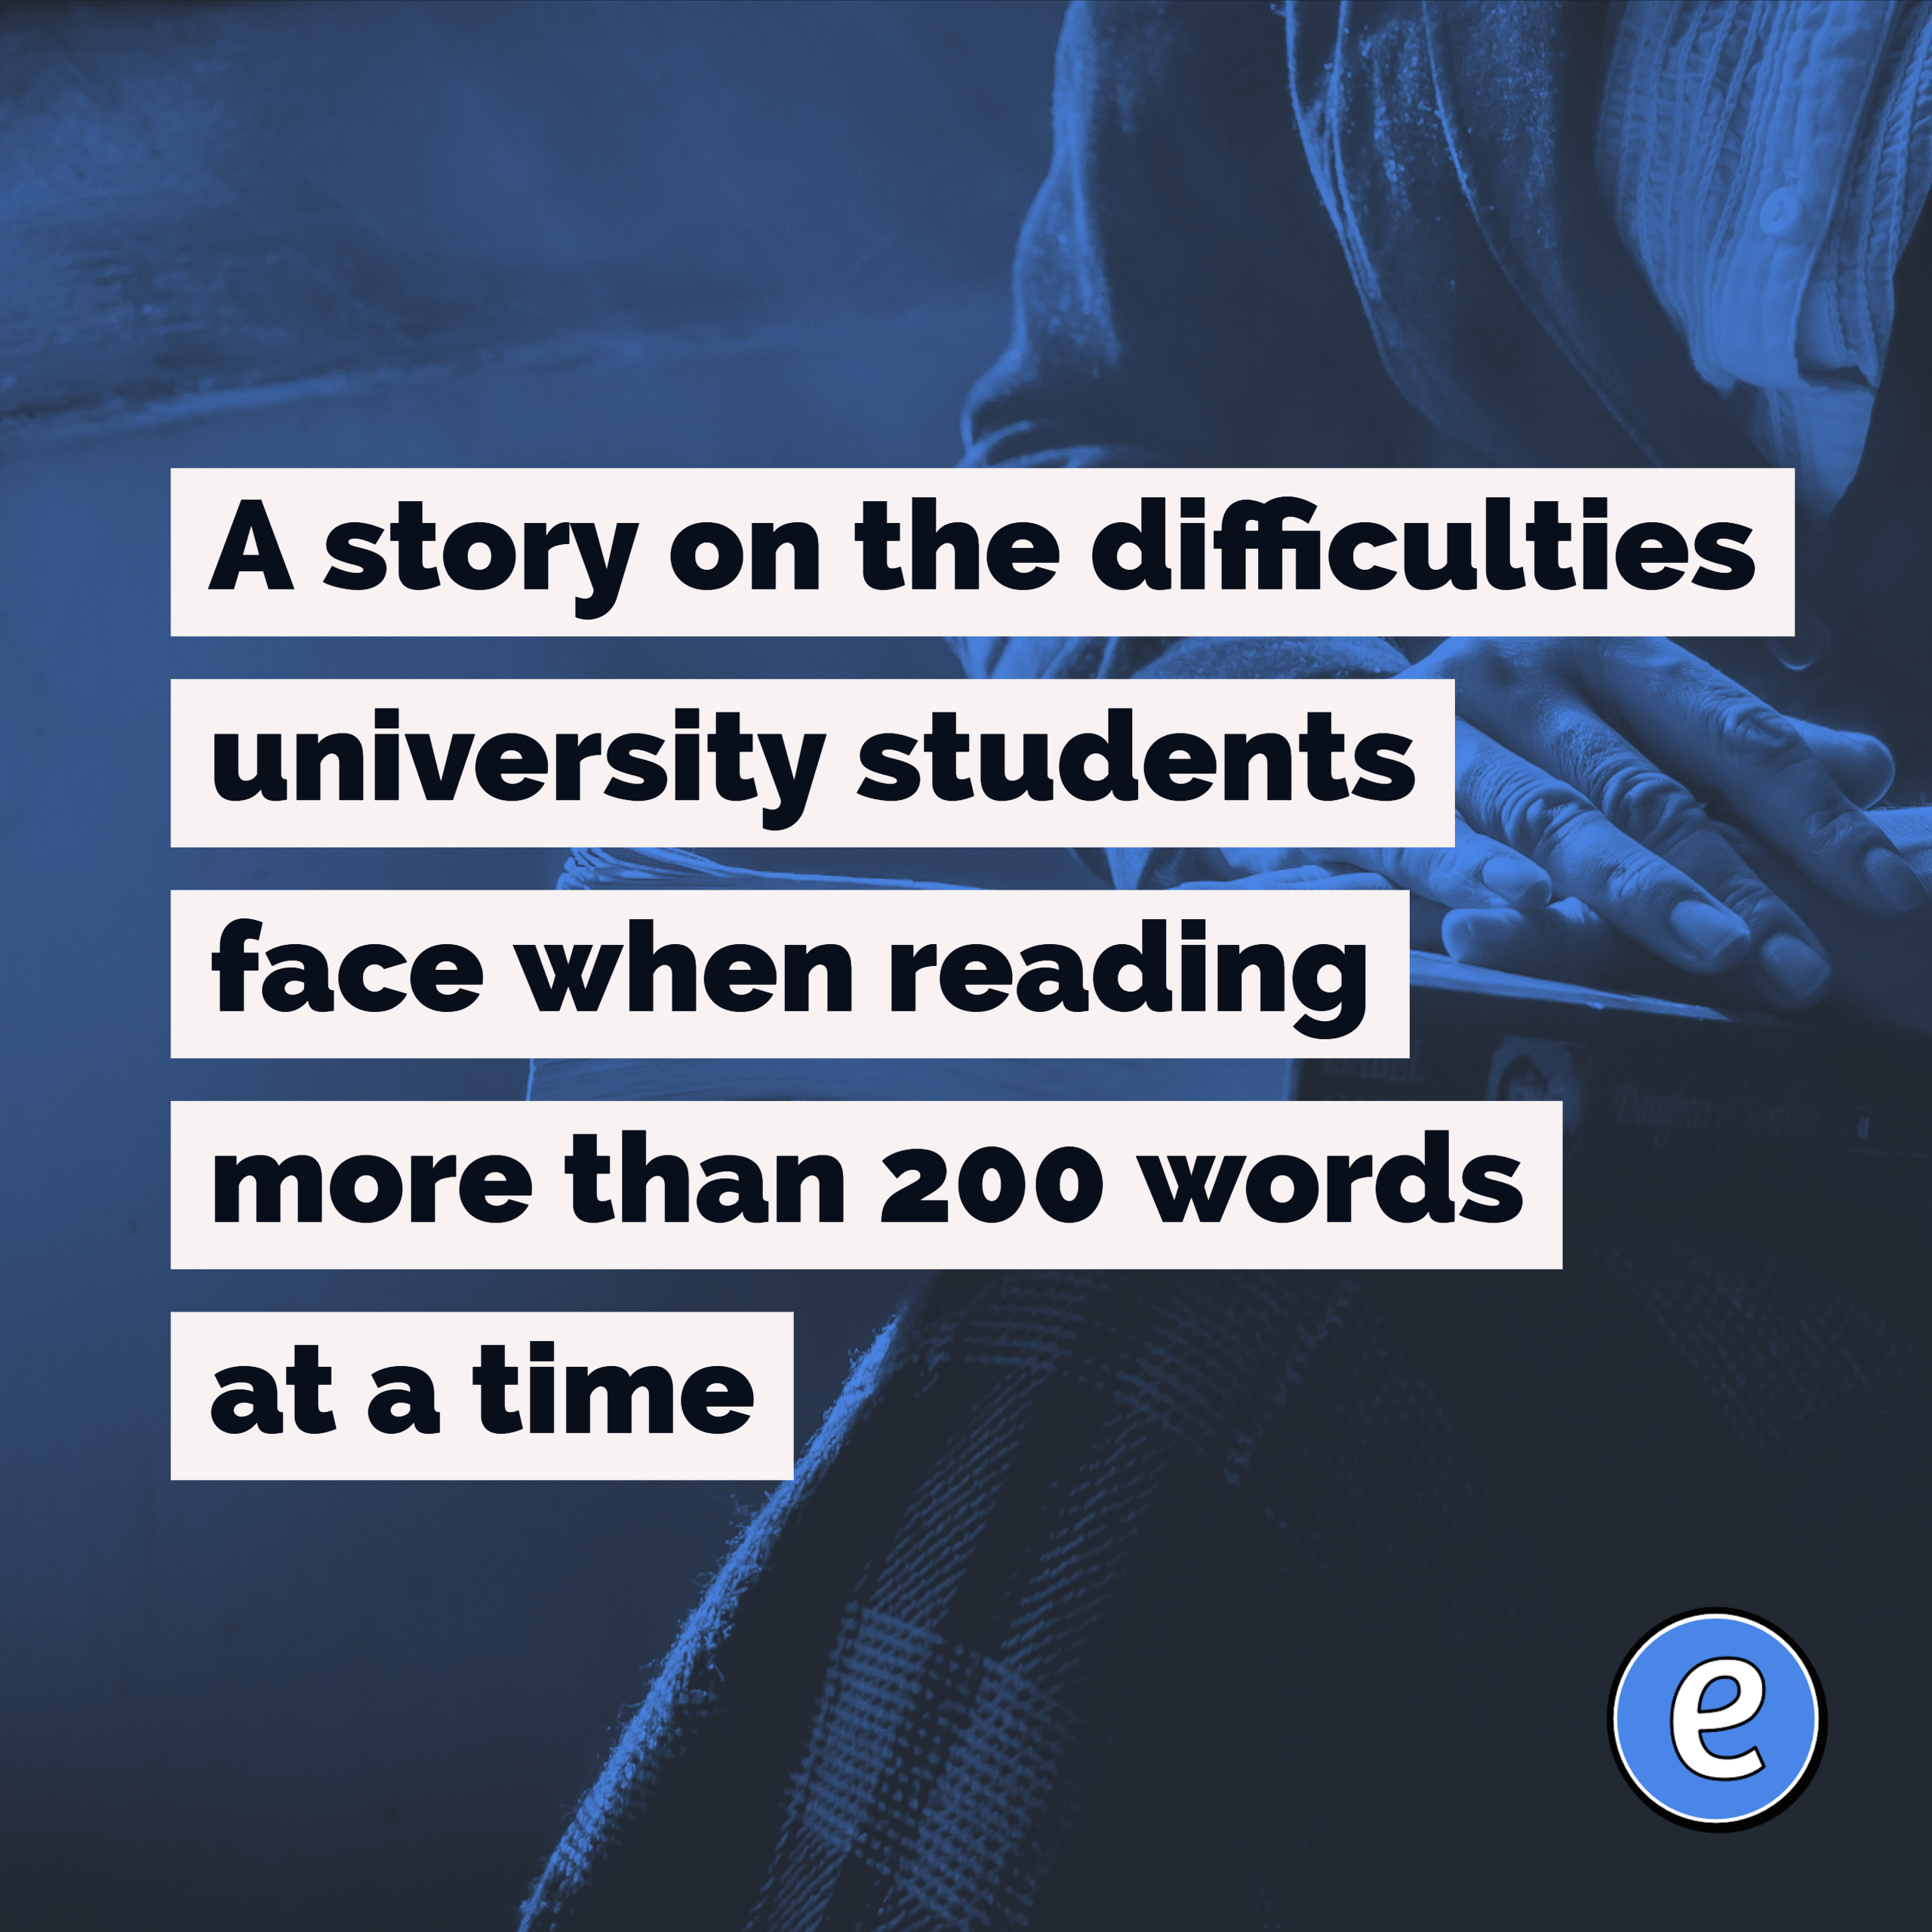 A story on the difficulties university students face when reading more than 200 words at a time